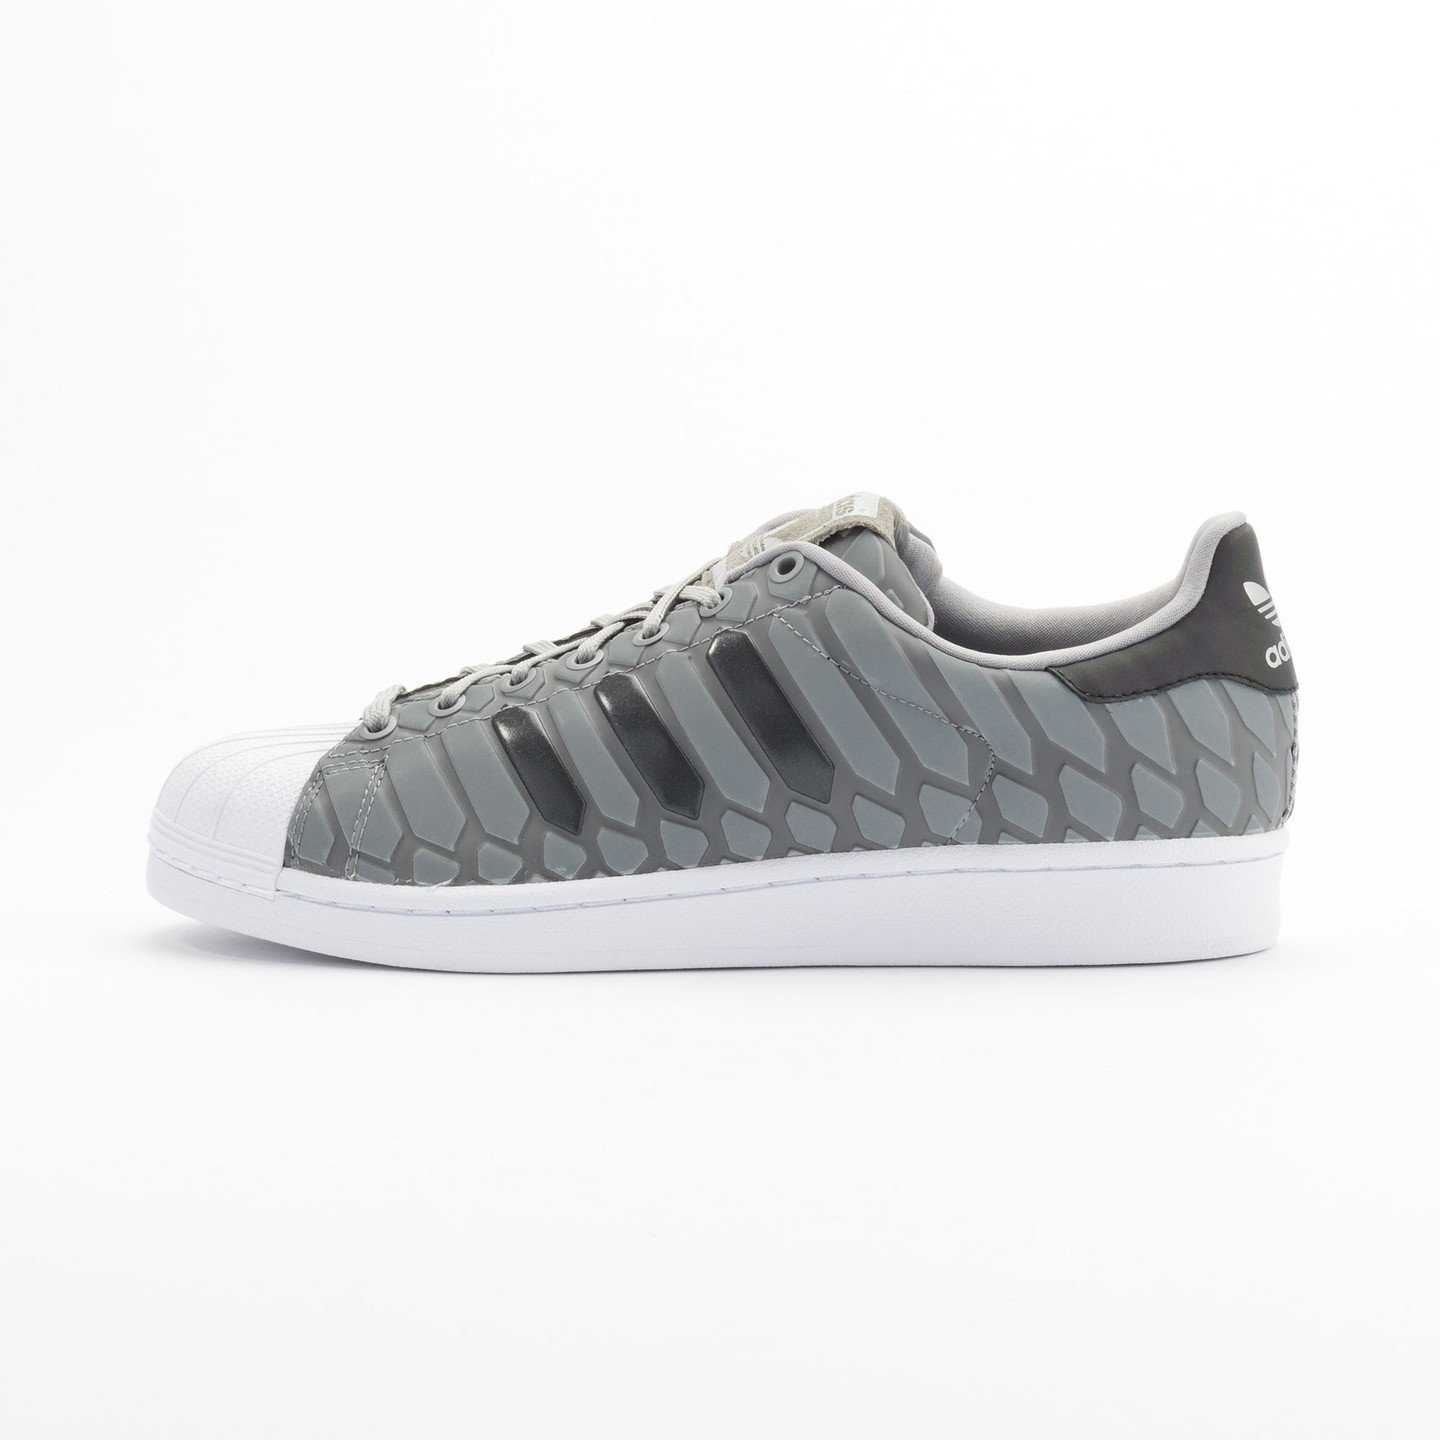 Adidas Superstar Xeno Pack Ltonix / Supcol / Ftwwht D69367-44